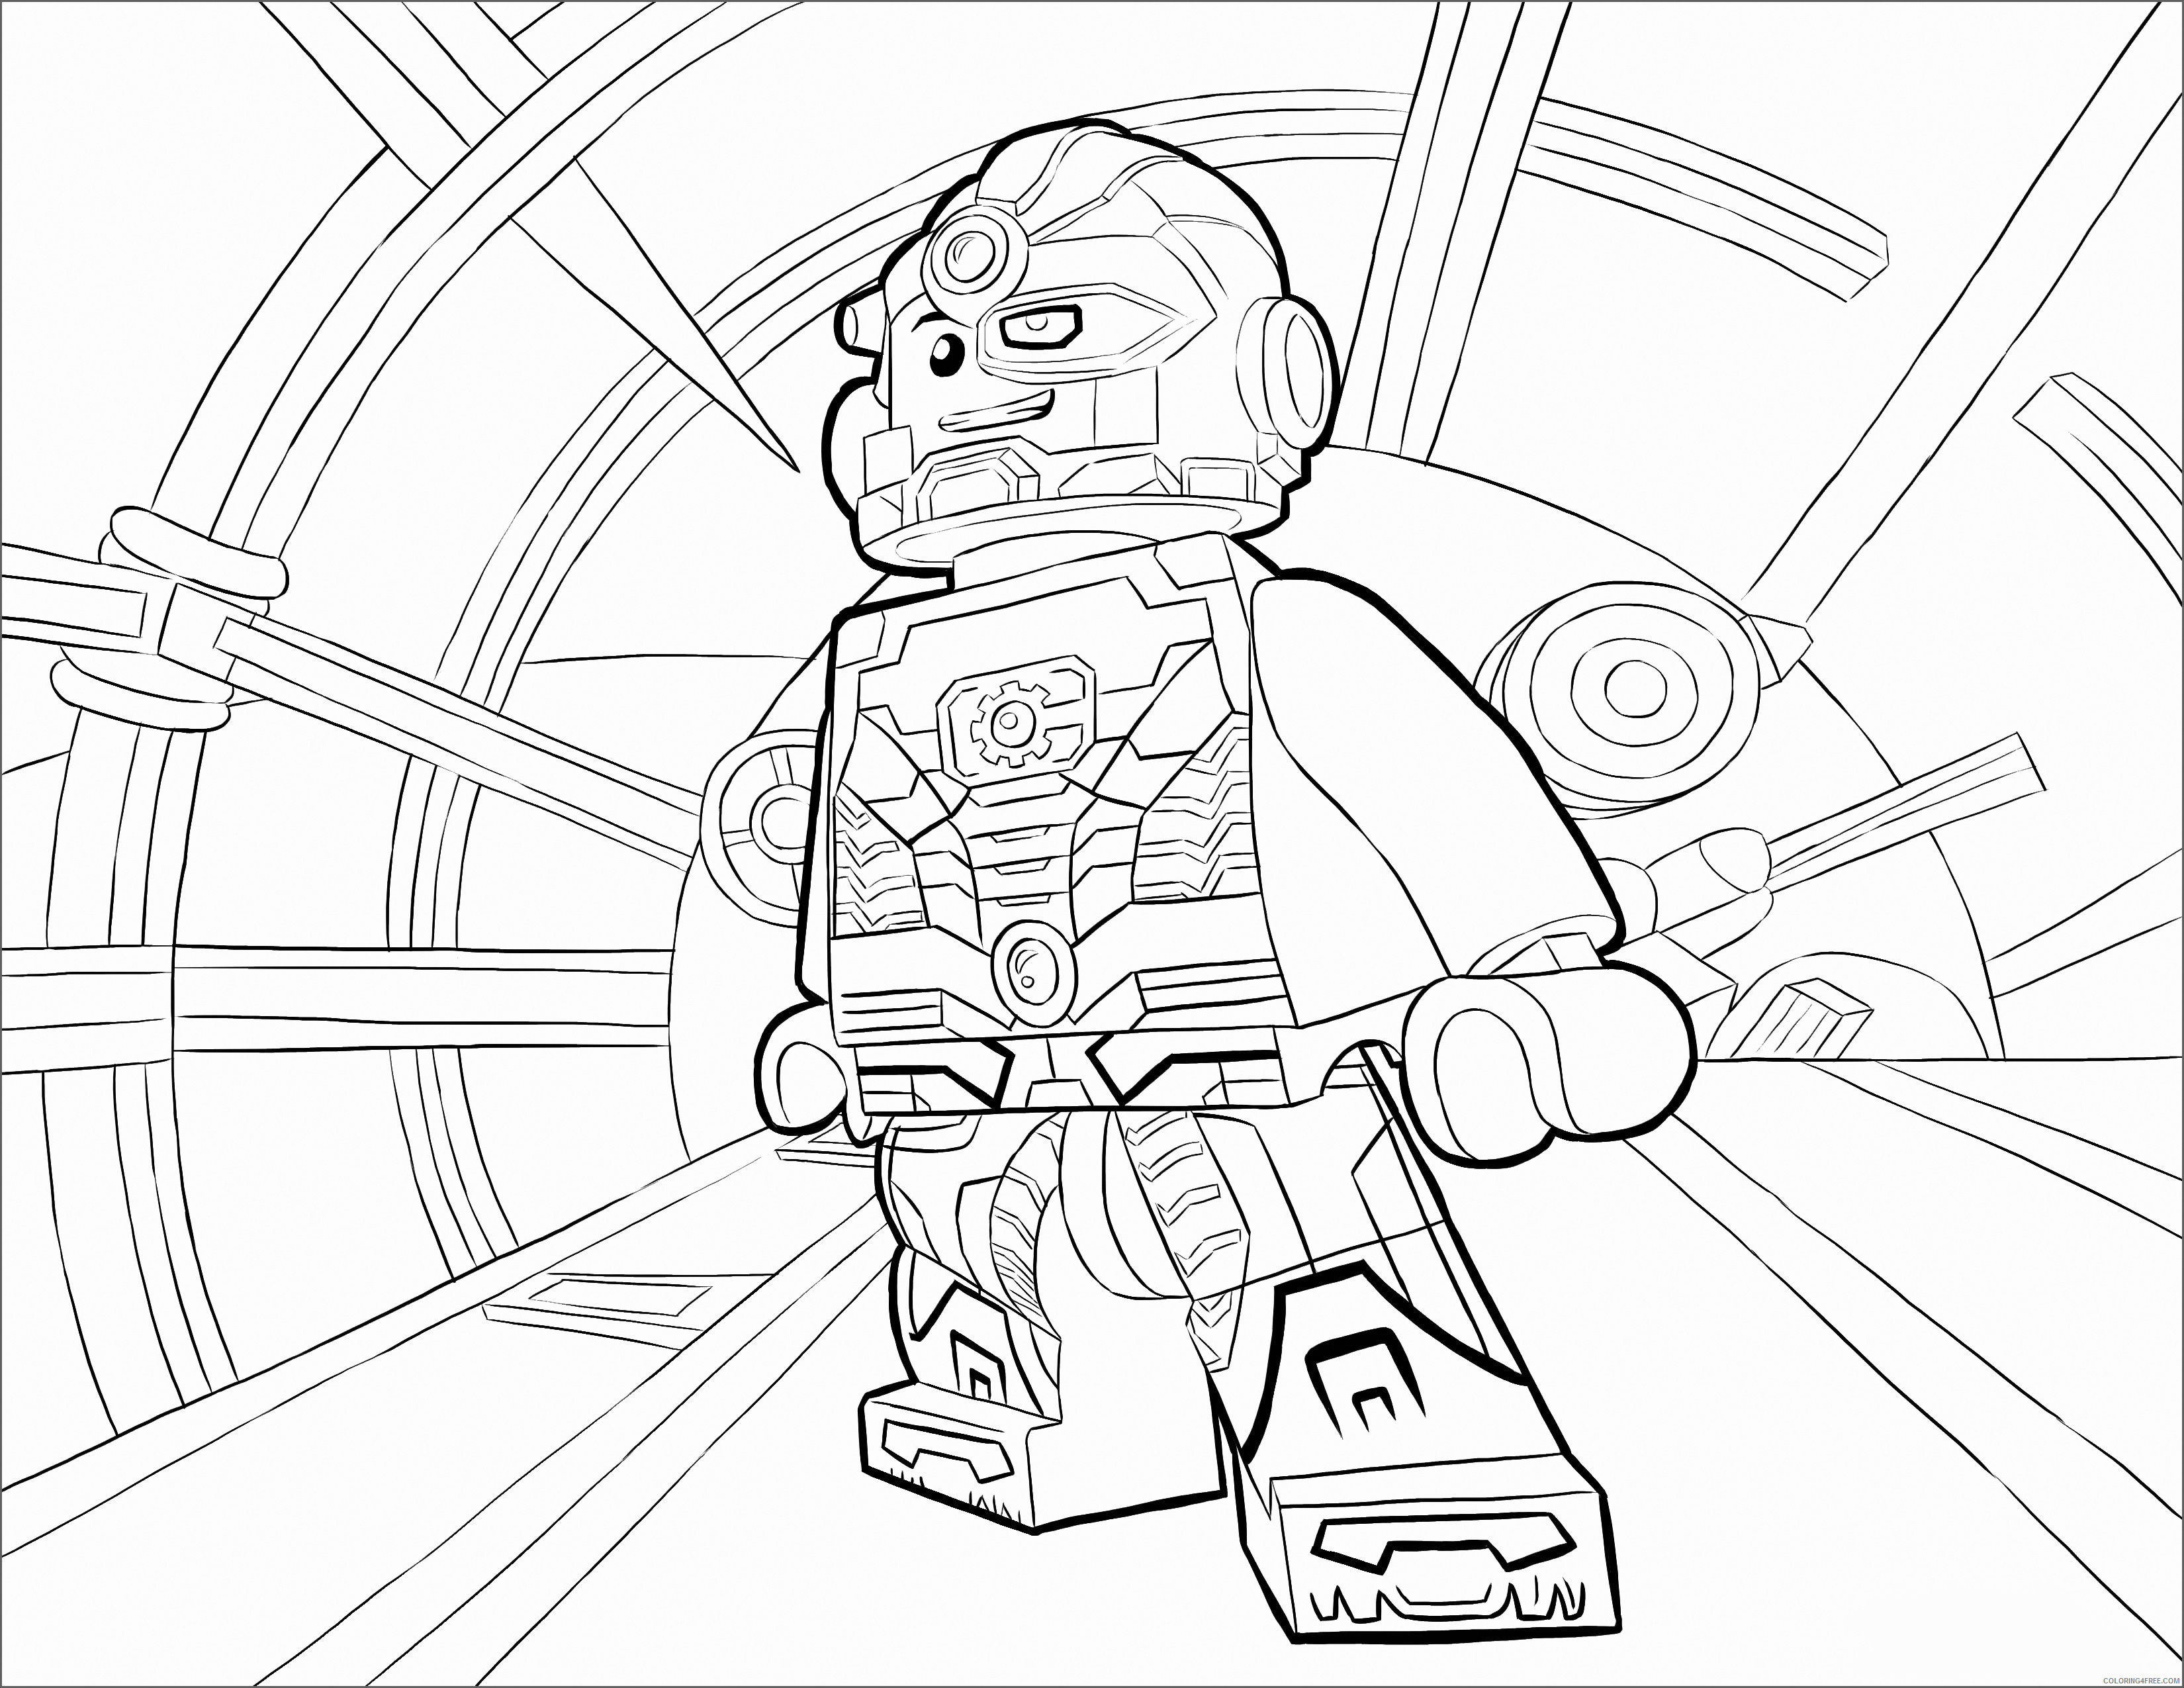 Lego Marvel Coloring Pages Cartoons Superhero Printable 2020 3761 Coloring4free Coloring4free Com